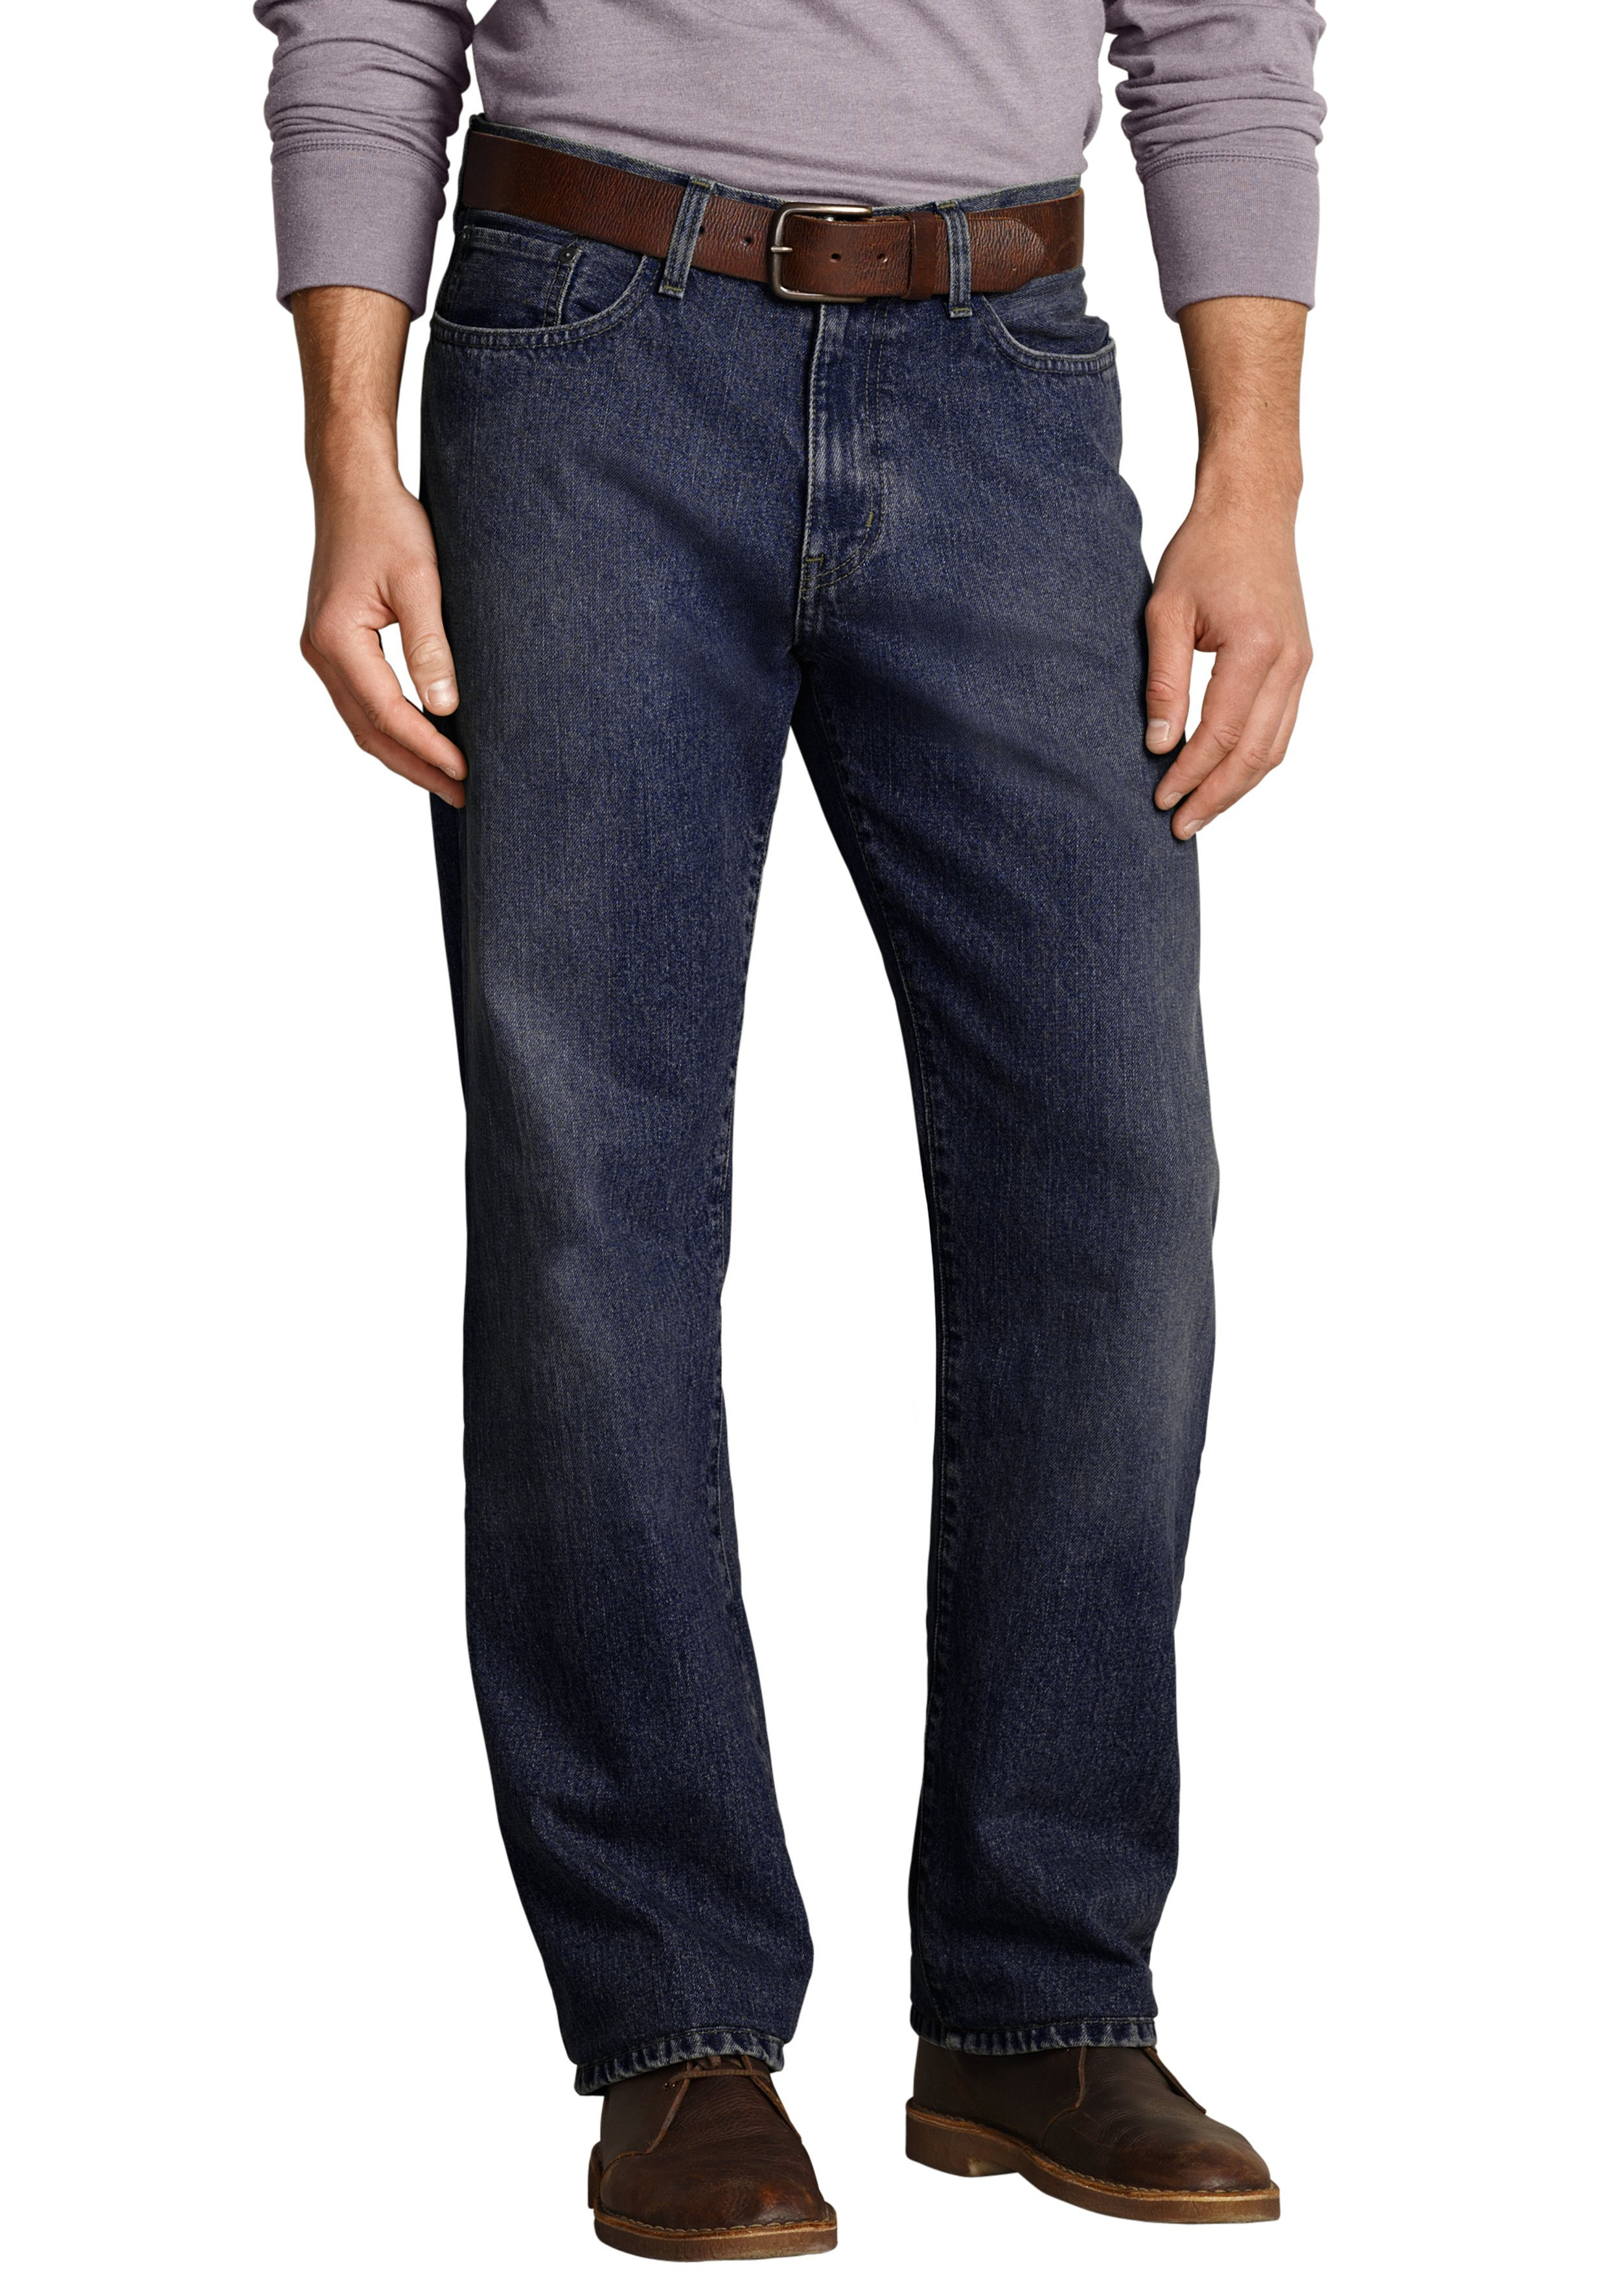 Eddie Bauer Relaxed Fit Jeans